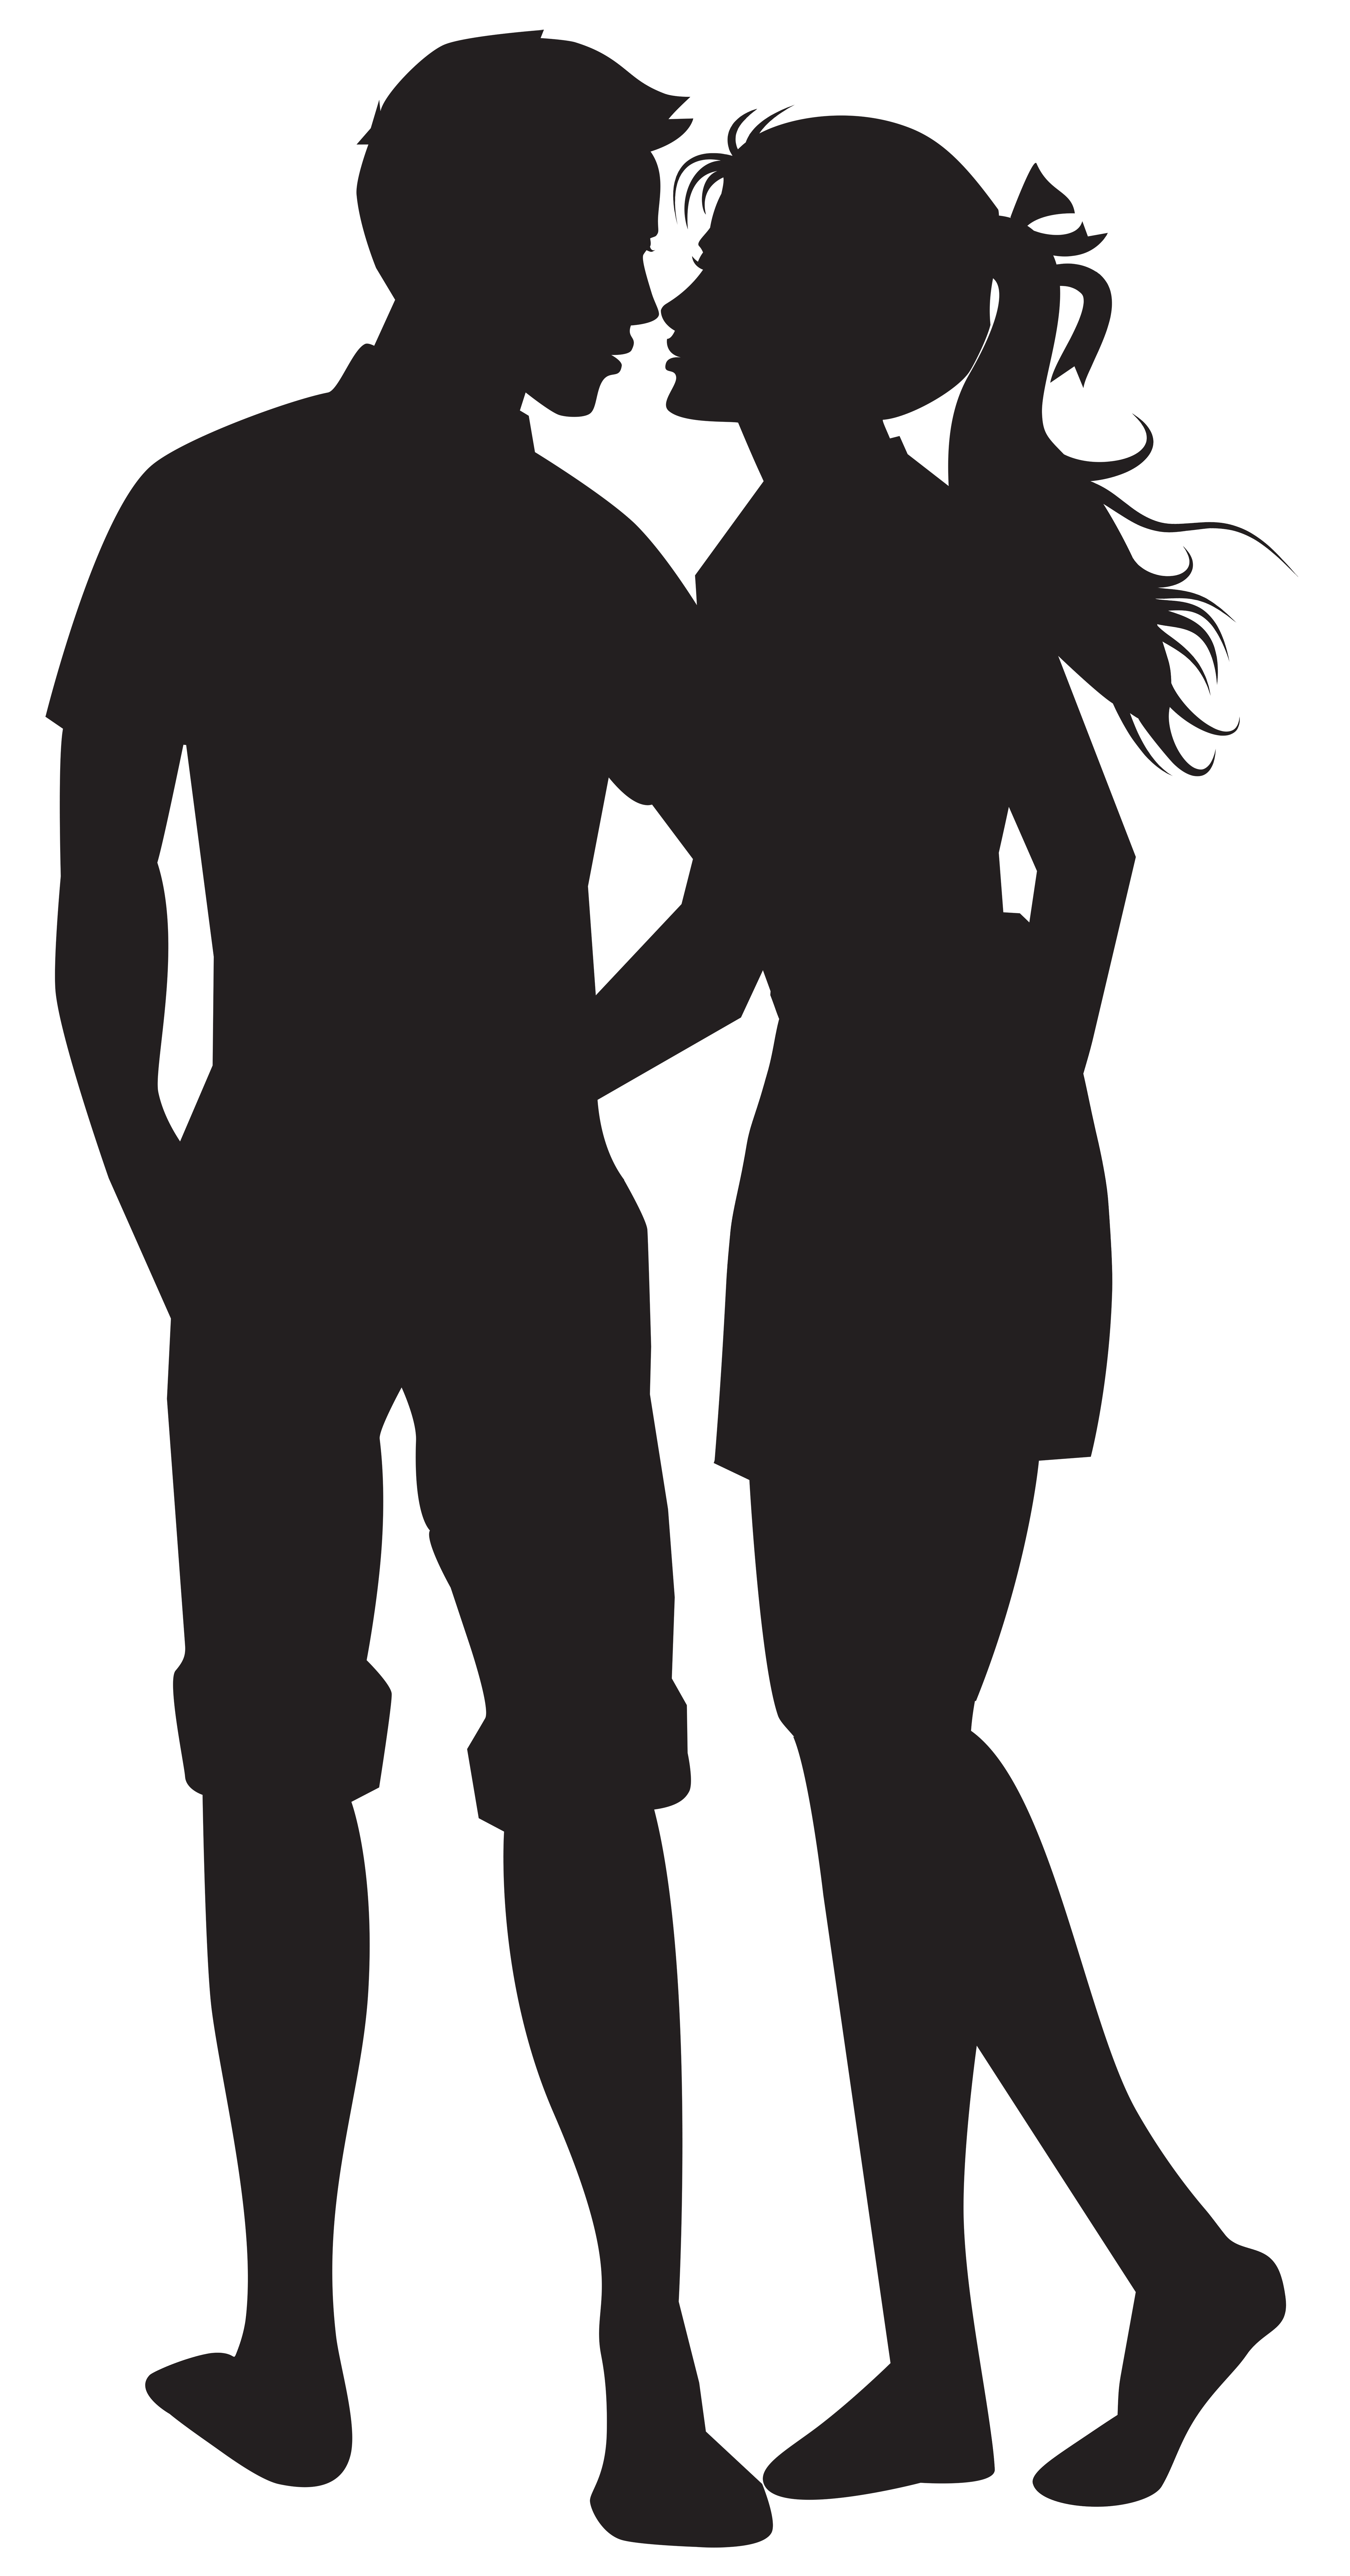 Couple Png Silhouettes Clip Art Image Silhouette Clip Art Silhouette Painting Silhouette Art